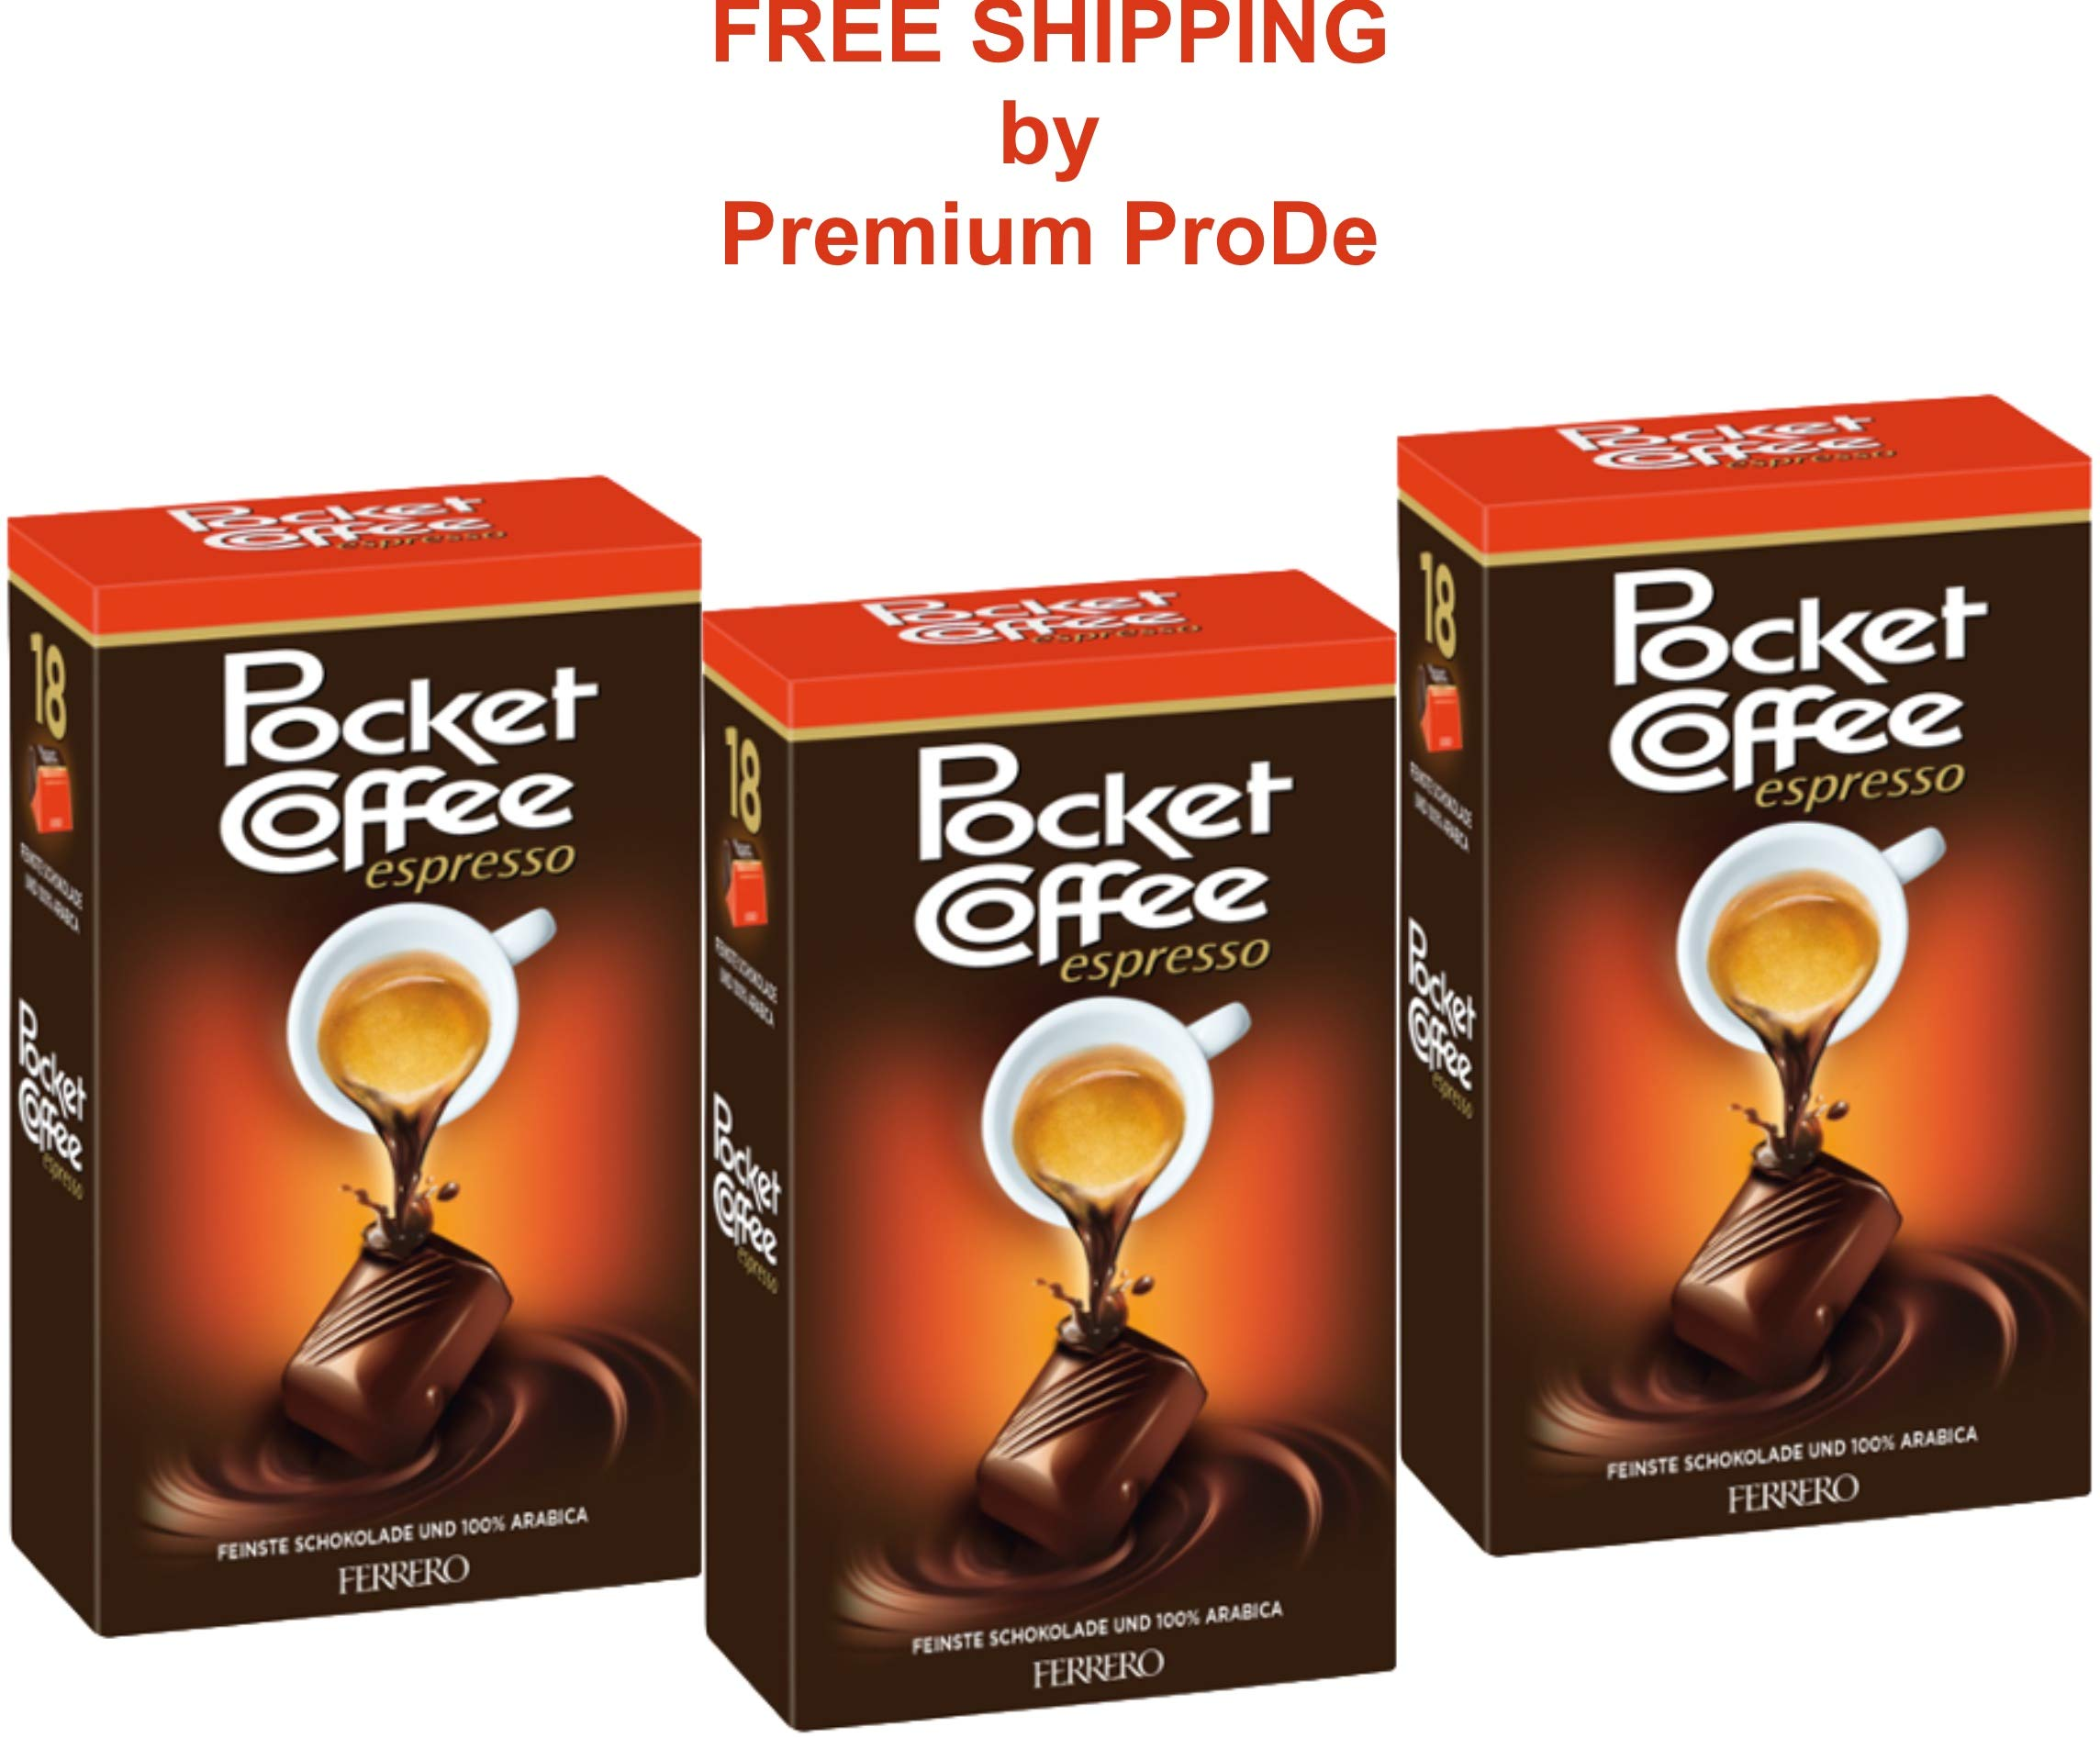 3x225g FERRERO POCKET COFFEE with a real, liquid, Italian espresso wrapped in crisp, fine chocolate by Ferrero Pocket Coffee